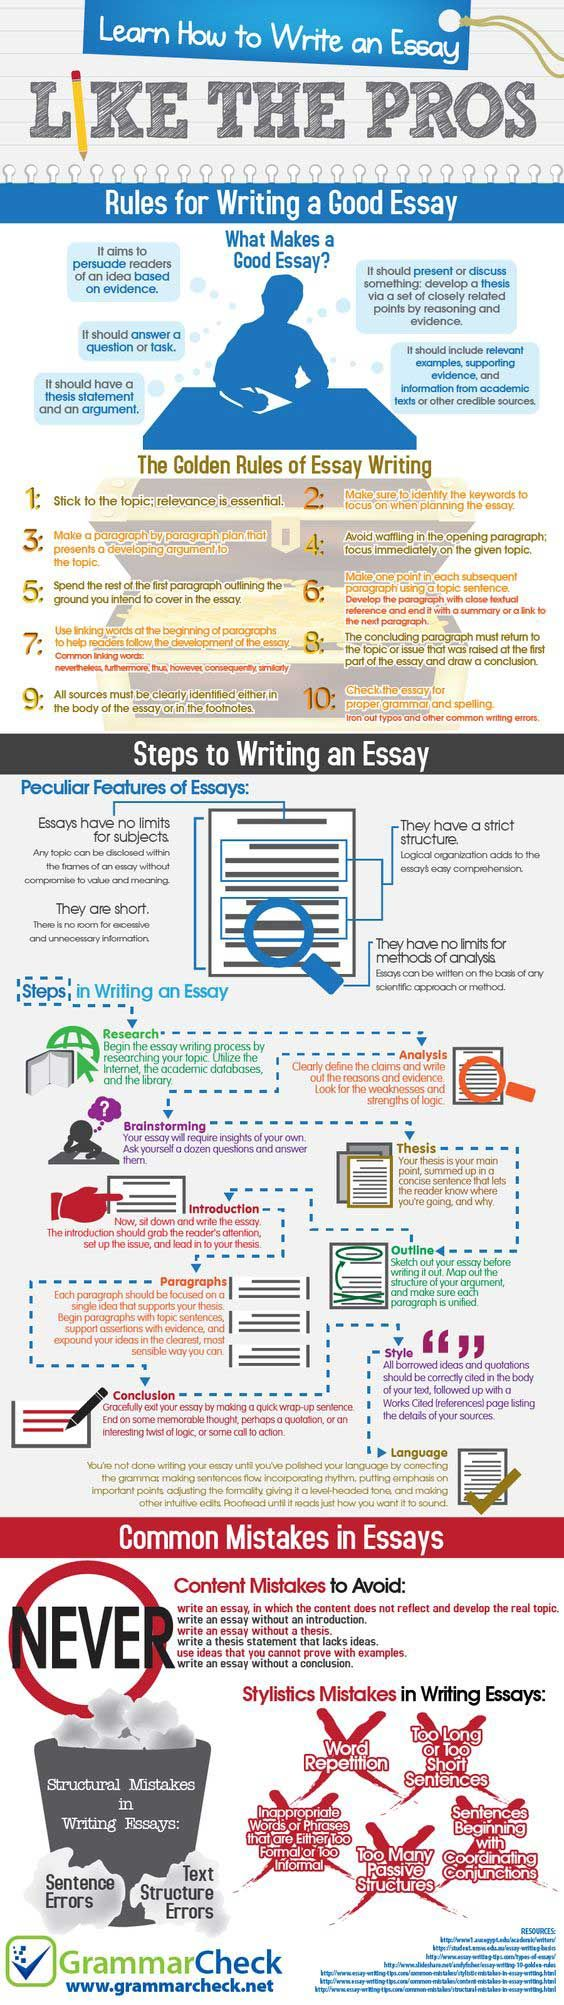 easiest way to write an essay how to write ielts essay  best ideas about research paper college 17 best ideas about research paper college admission apa style essays writer